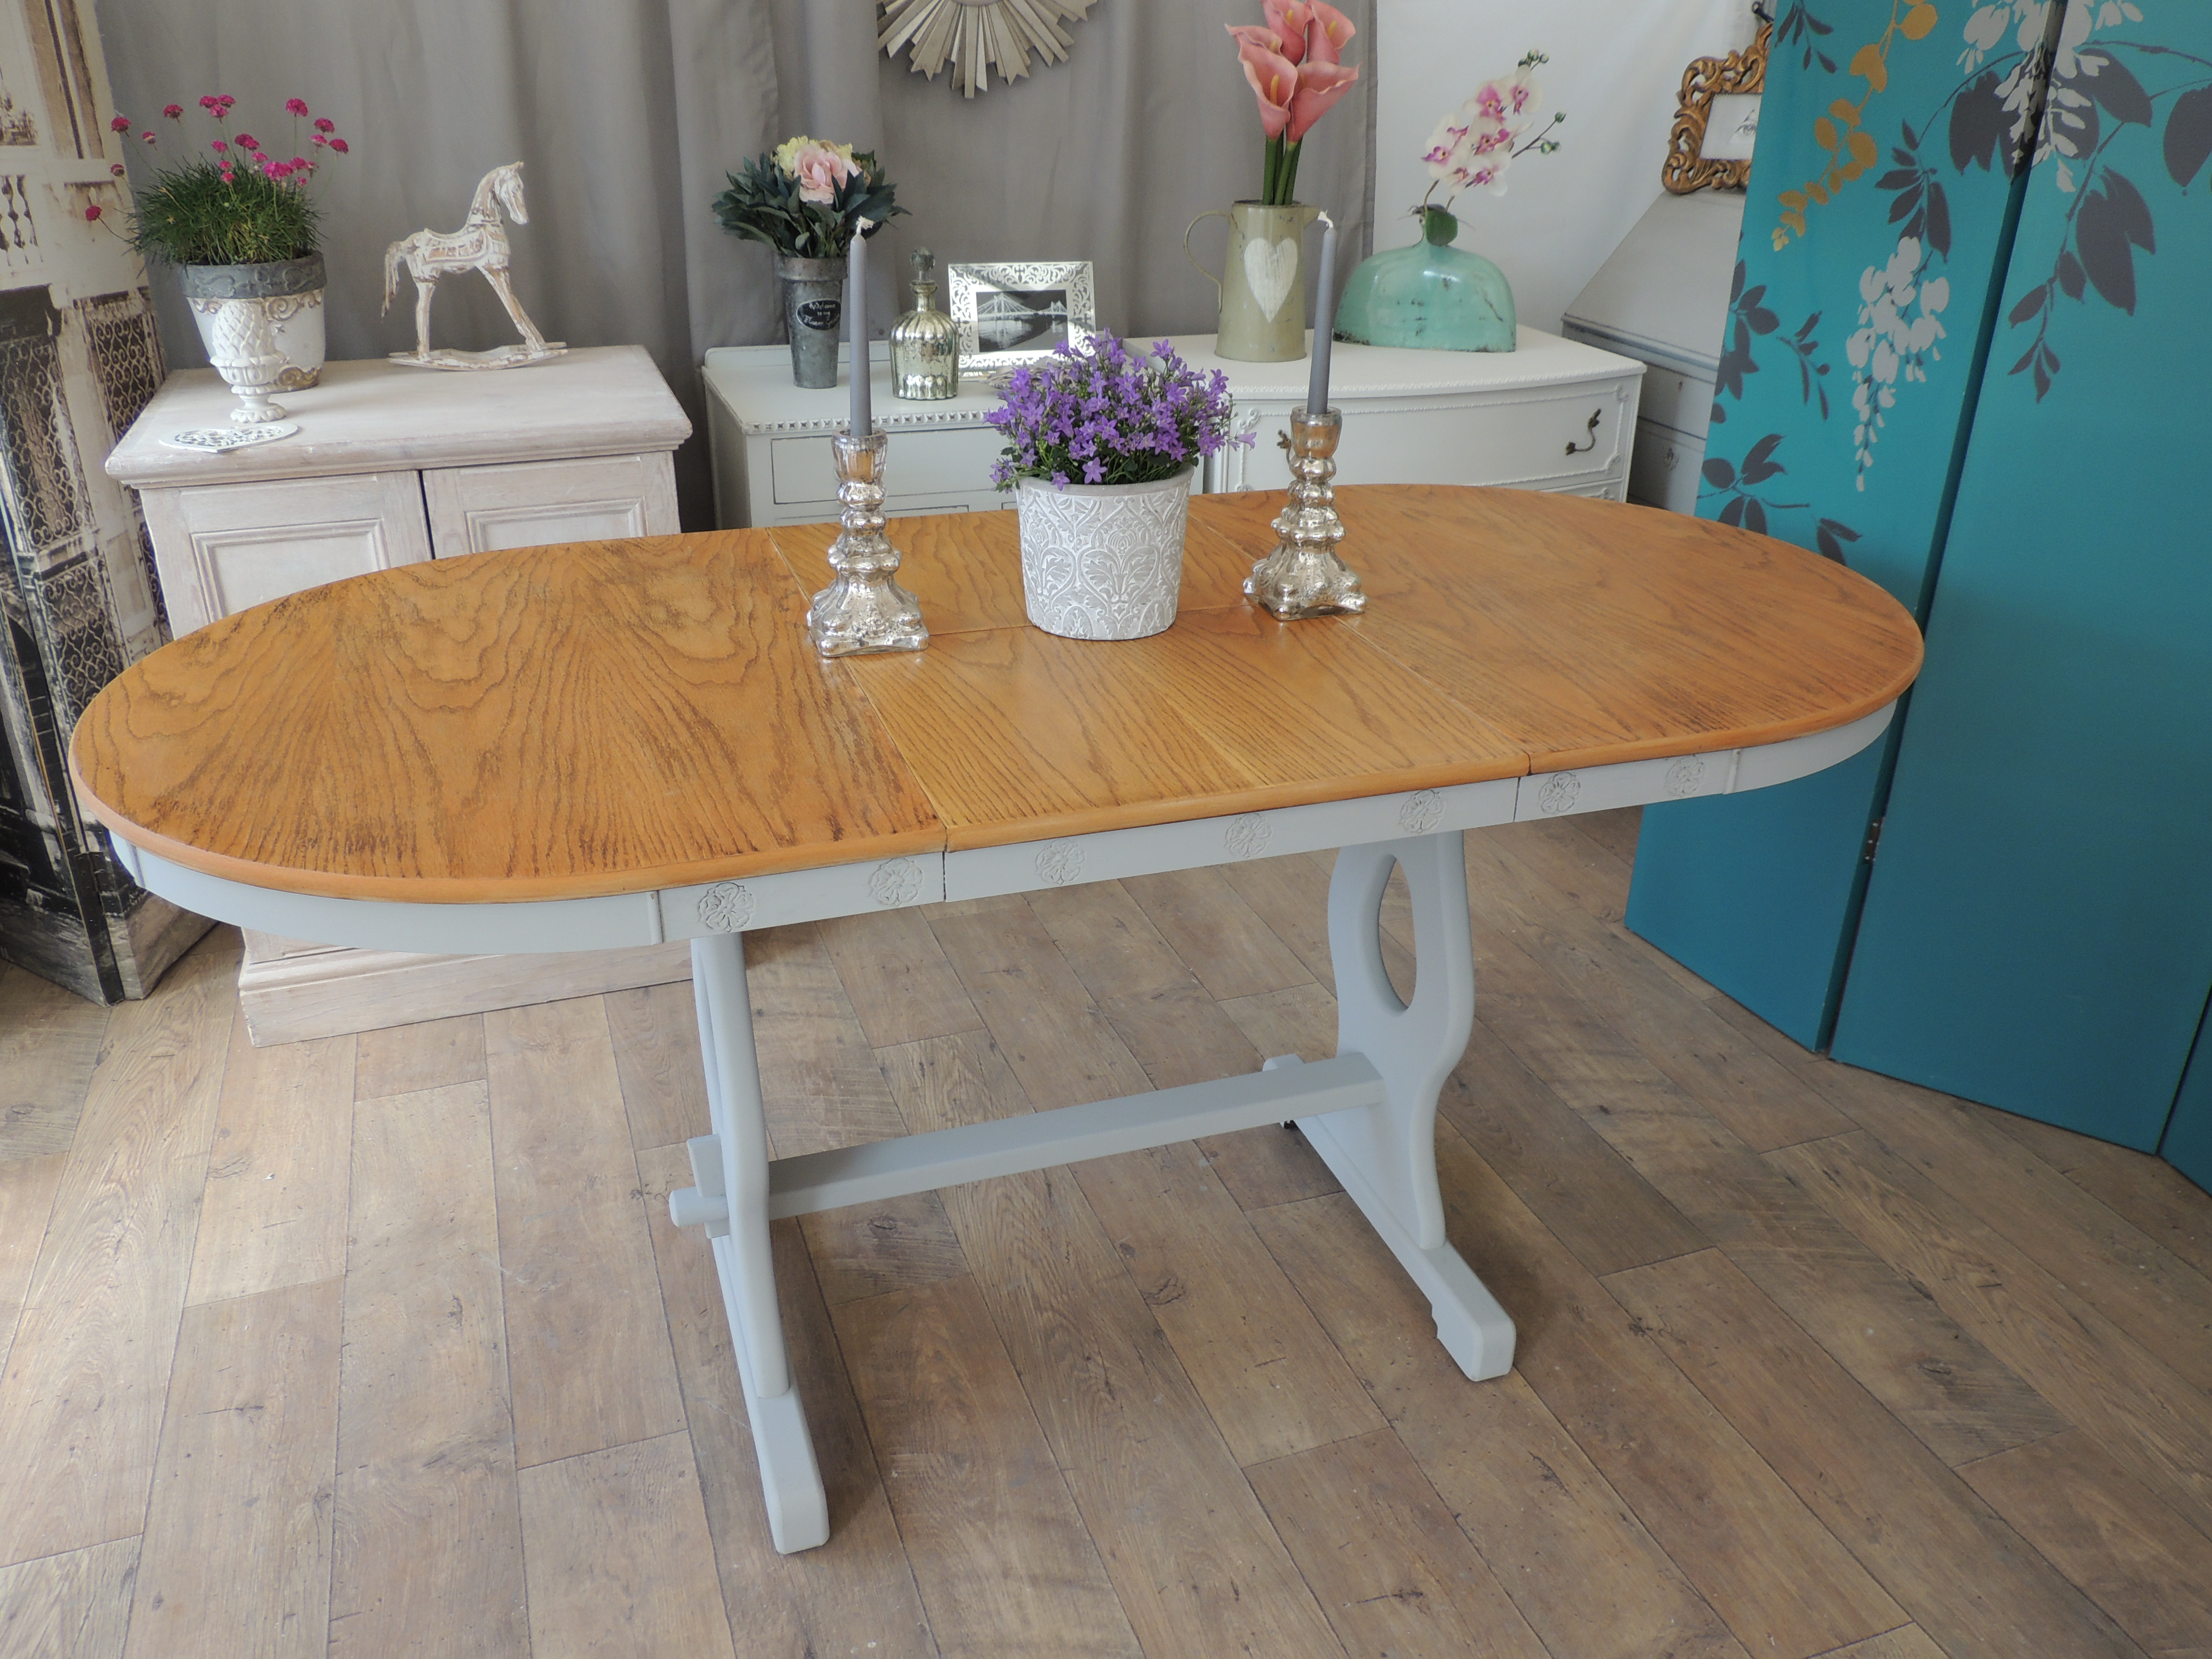 Shaby Chic Oak Extending Dining Table For 4 8 People